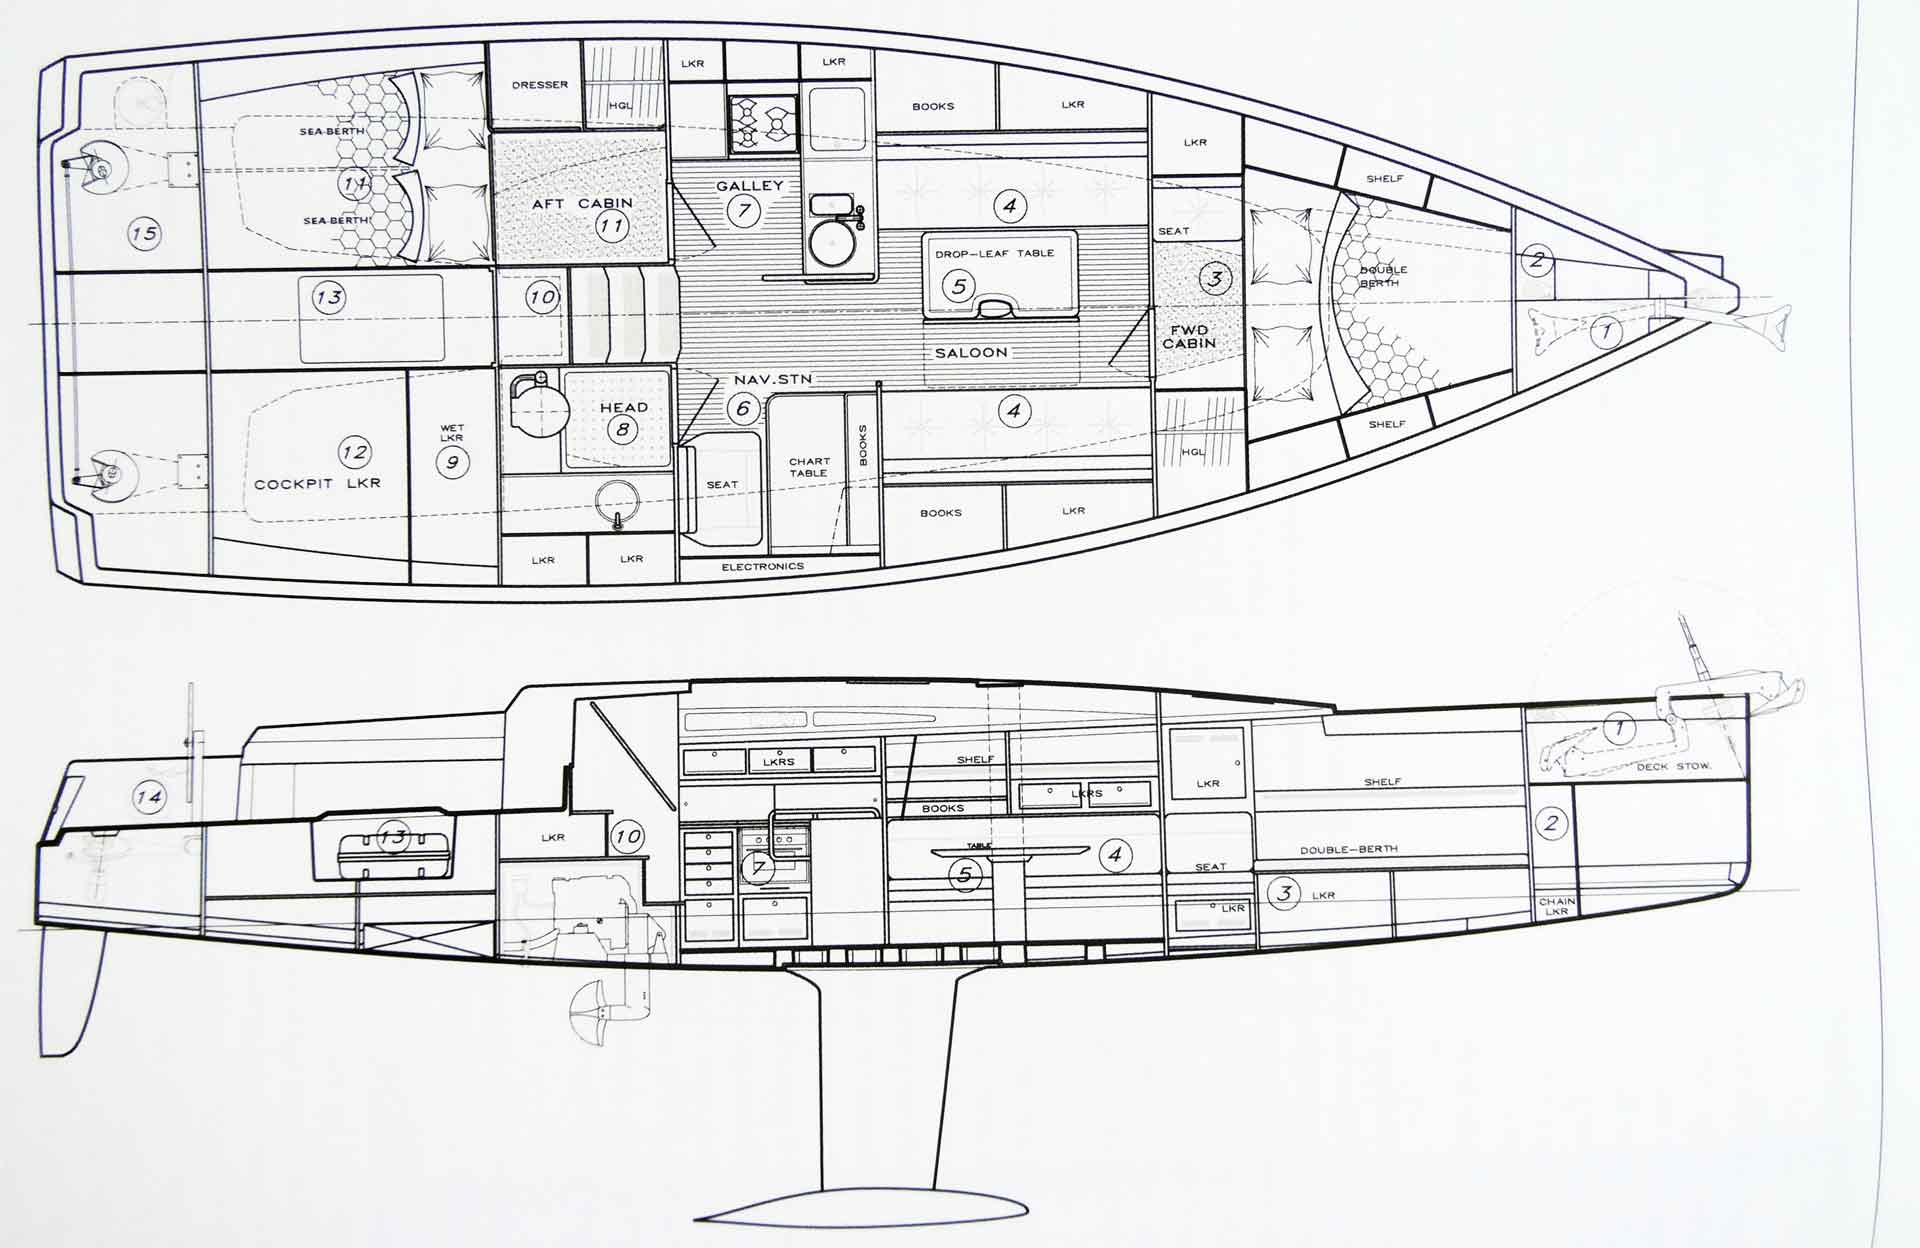 The whole book explains all figures and formulae on the basis of the YA-41 sailing yacht